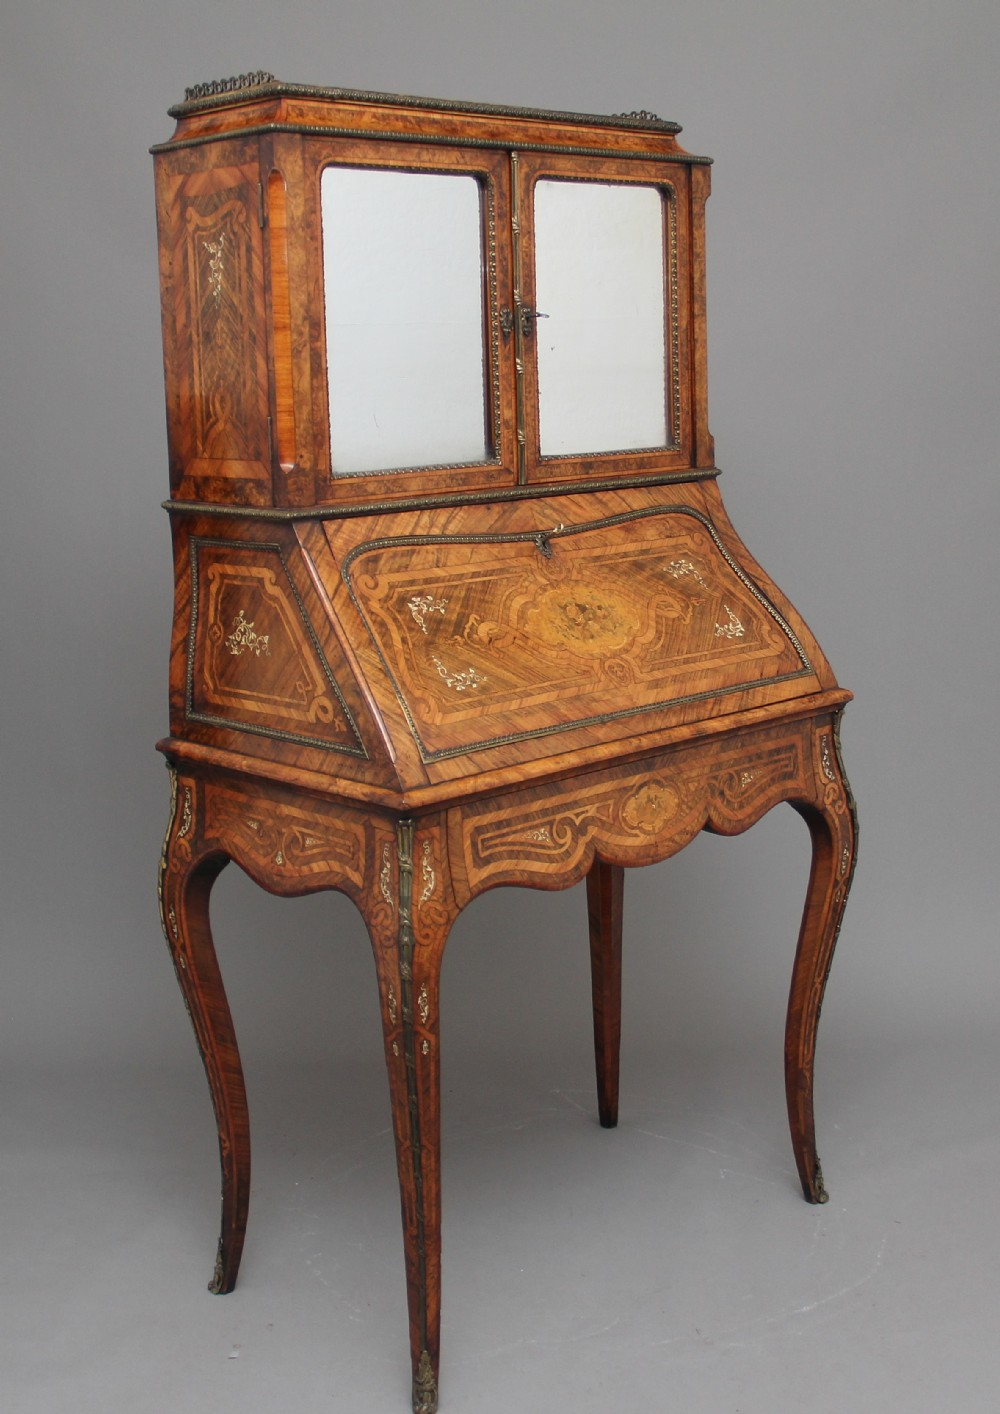 19th century walnut and kingwood bureau de dame